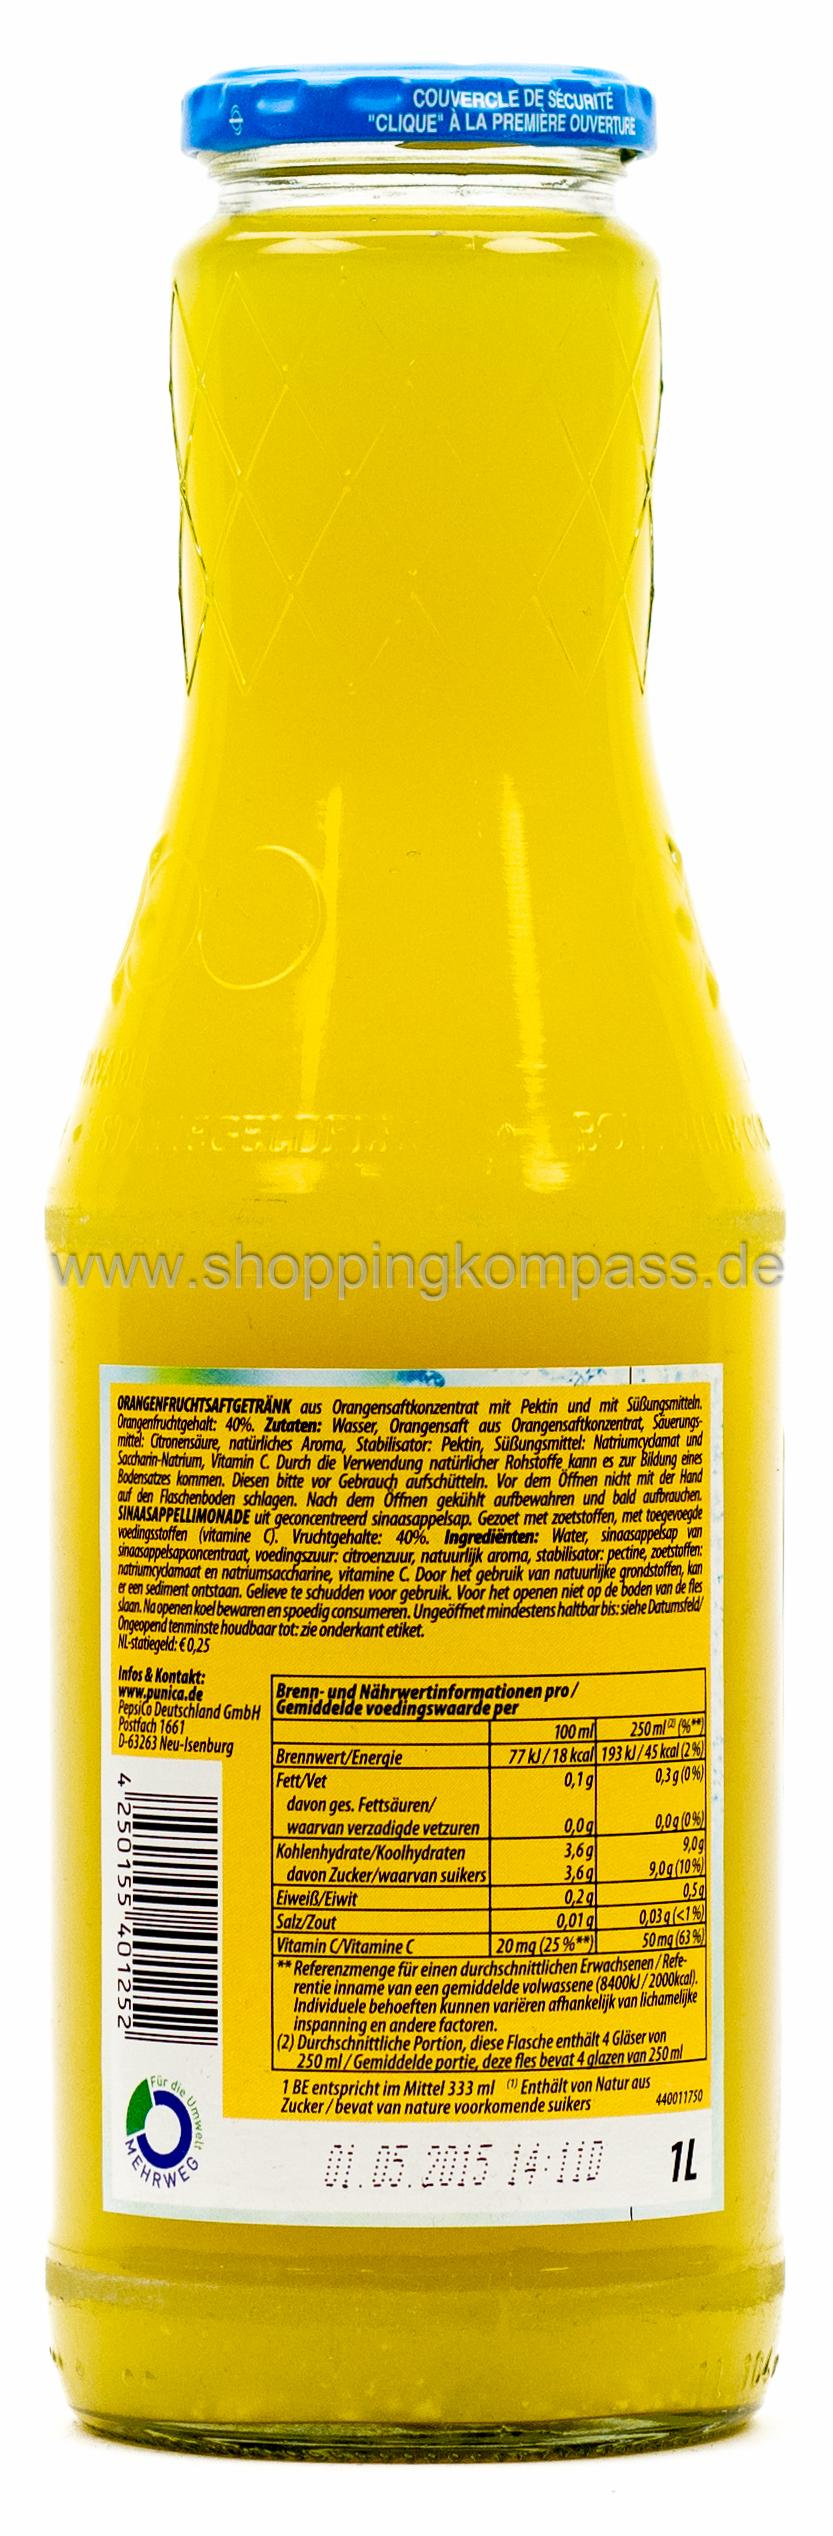 Punica Orange Plus Vitamin C 1 l Glas Mehrweg